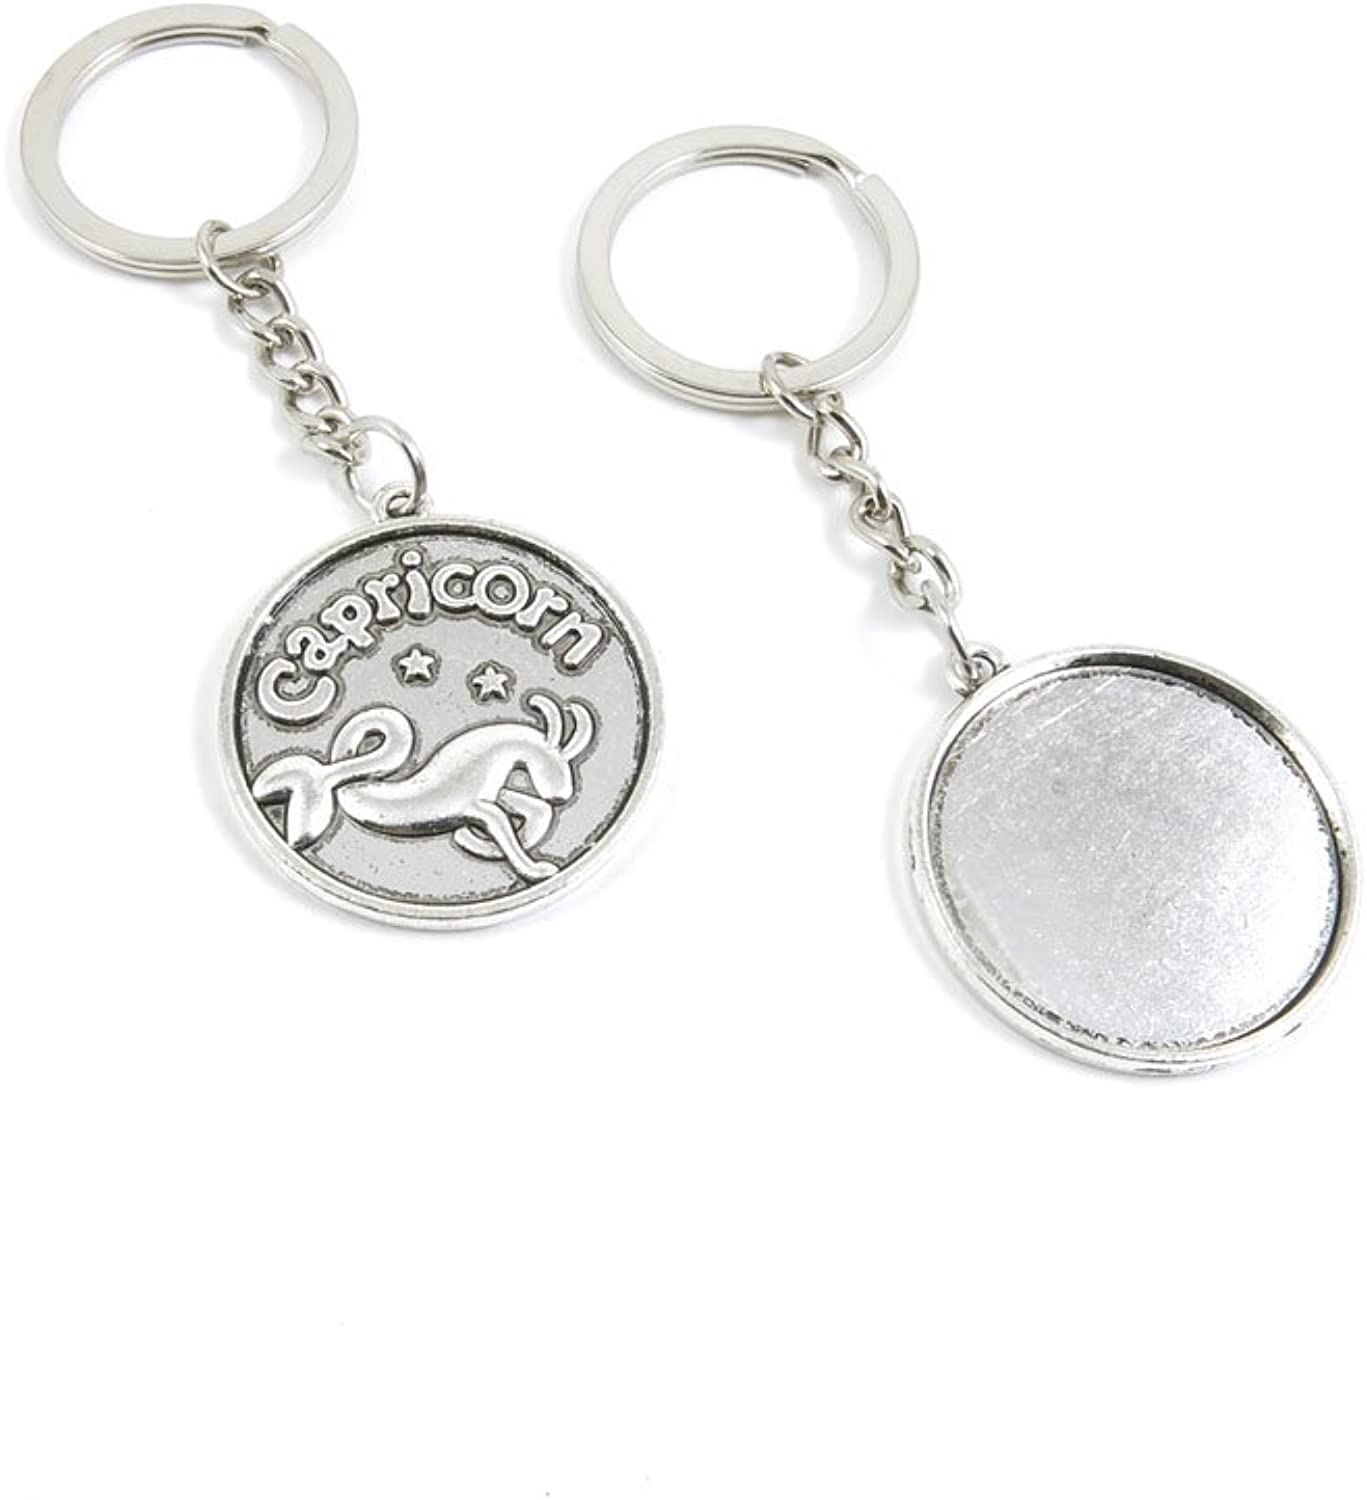 140 Pieces Fashion Jewelry Keyring Keychain Door Car Key Tag Ring Chain Supplier Supply Wholesale Bulk Lots Z1VI5 Capricorn Round Cabochon Base